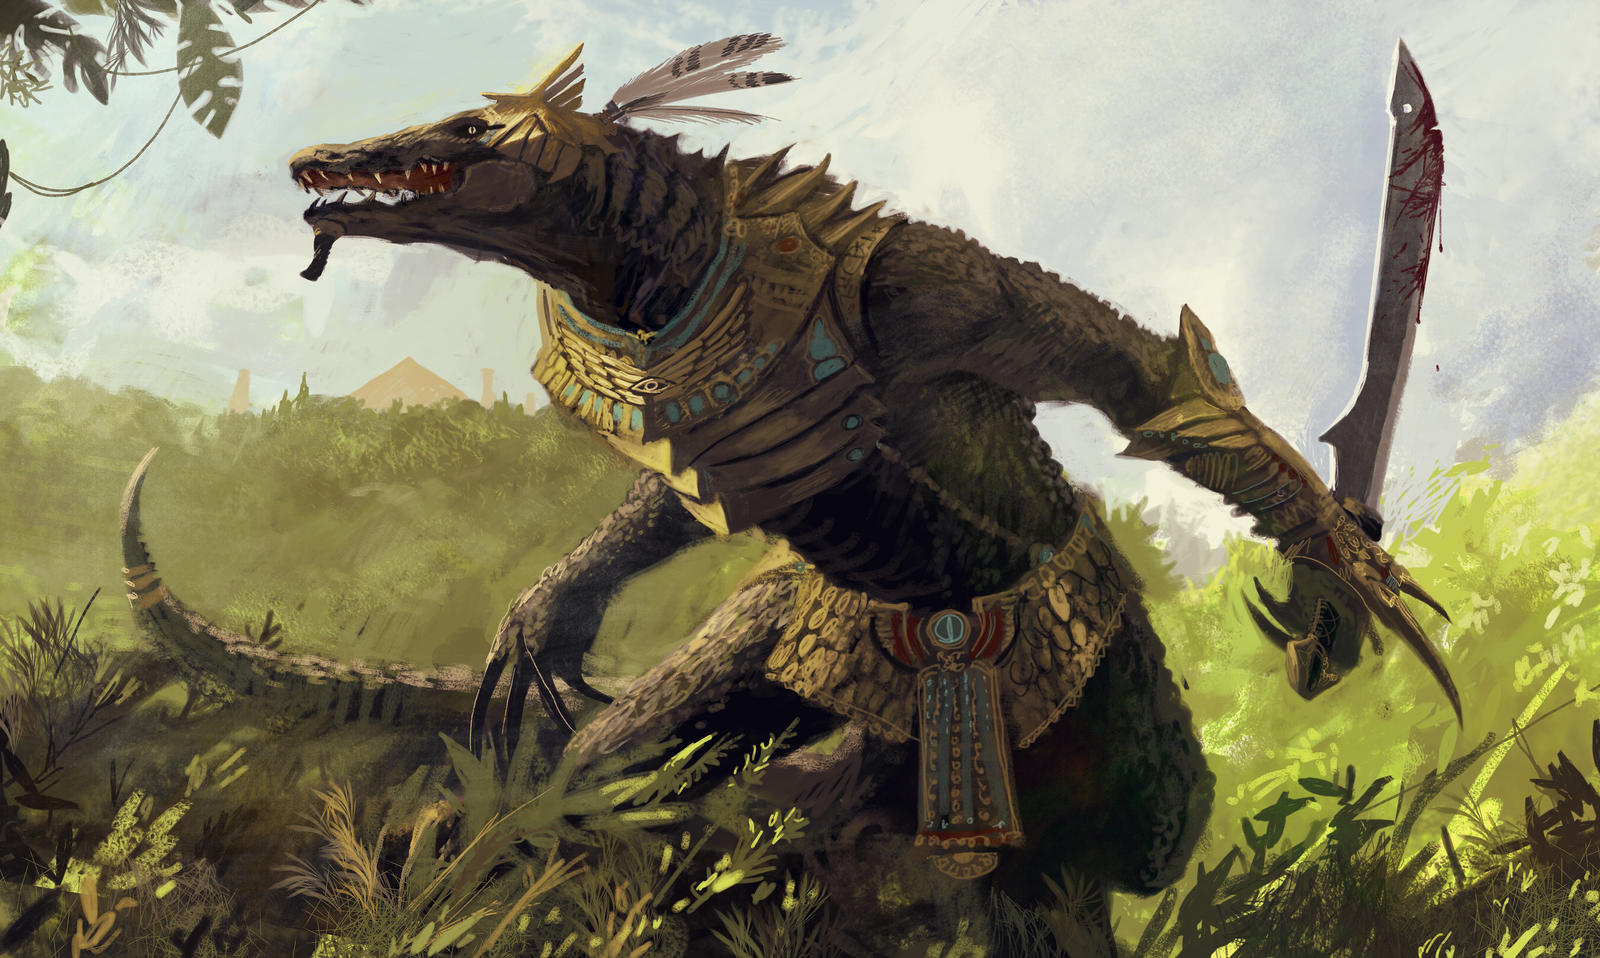 Lizardman by Obrotowy